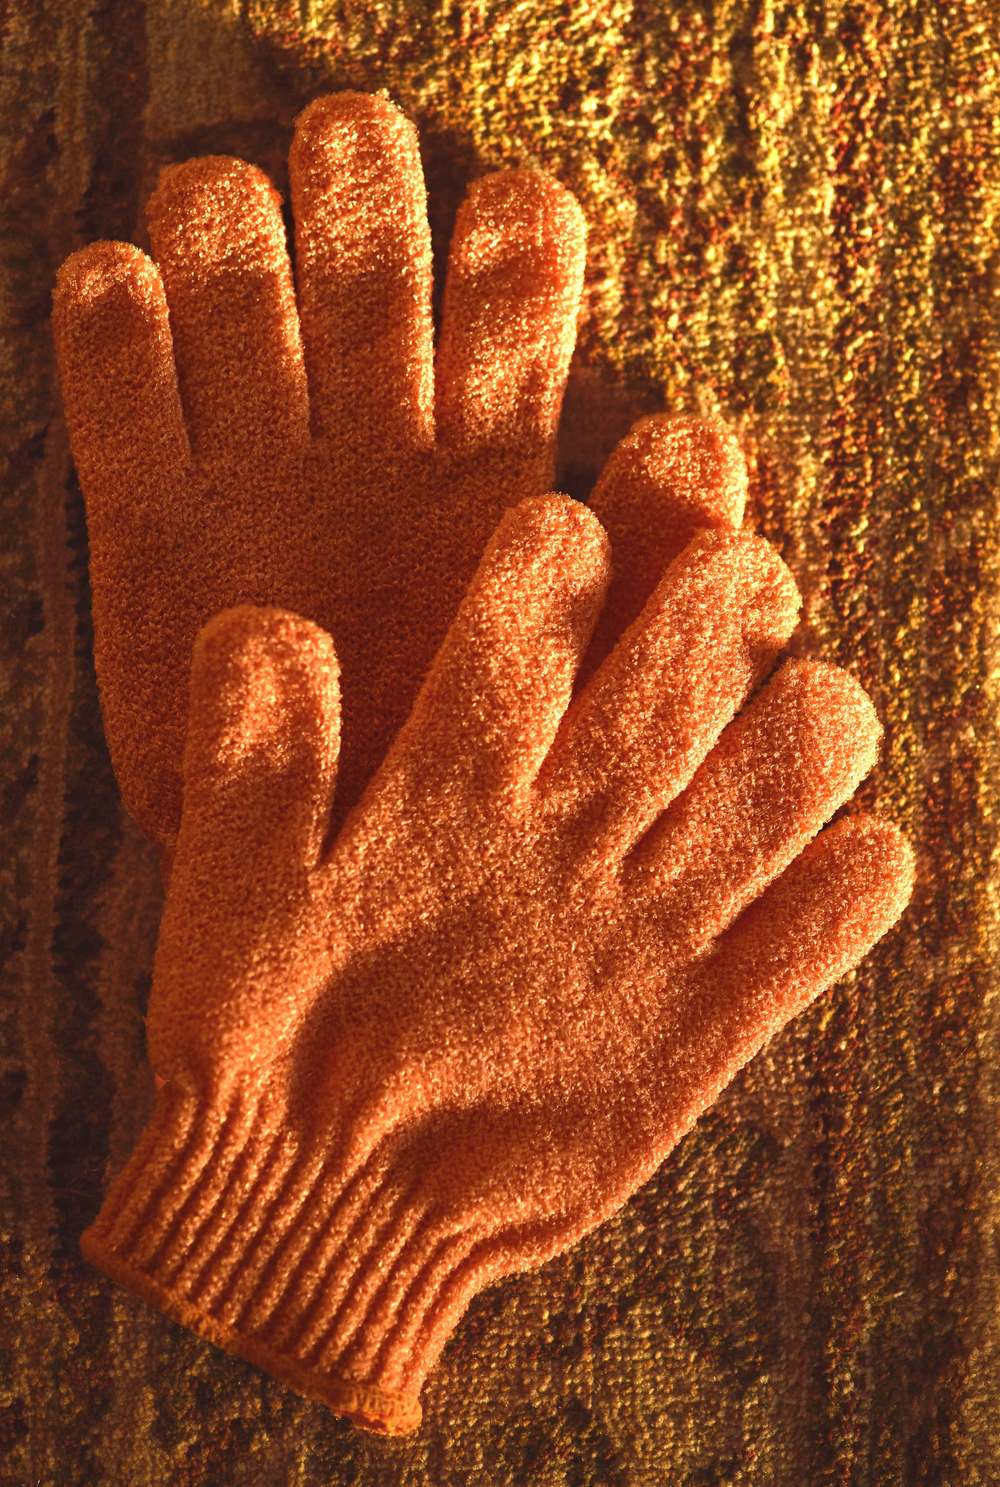 Body Shop scrub gloves. Image©sourcingstyle.com